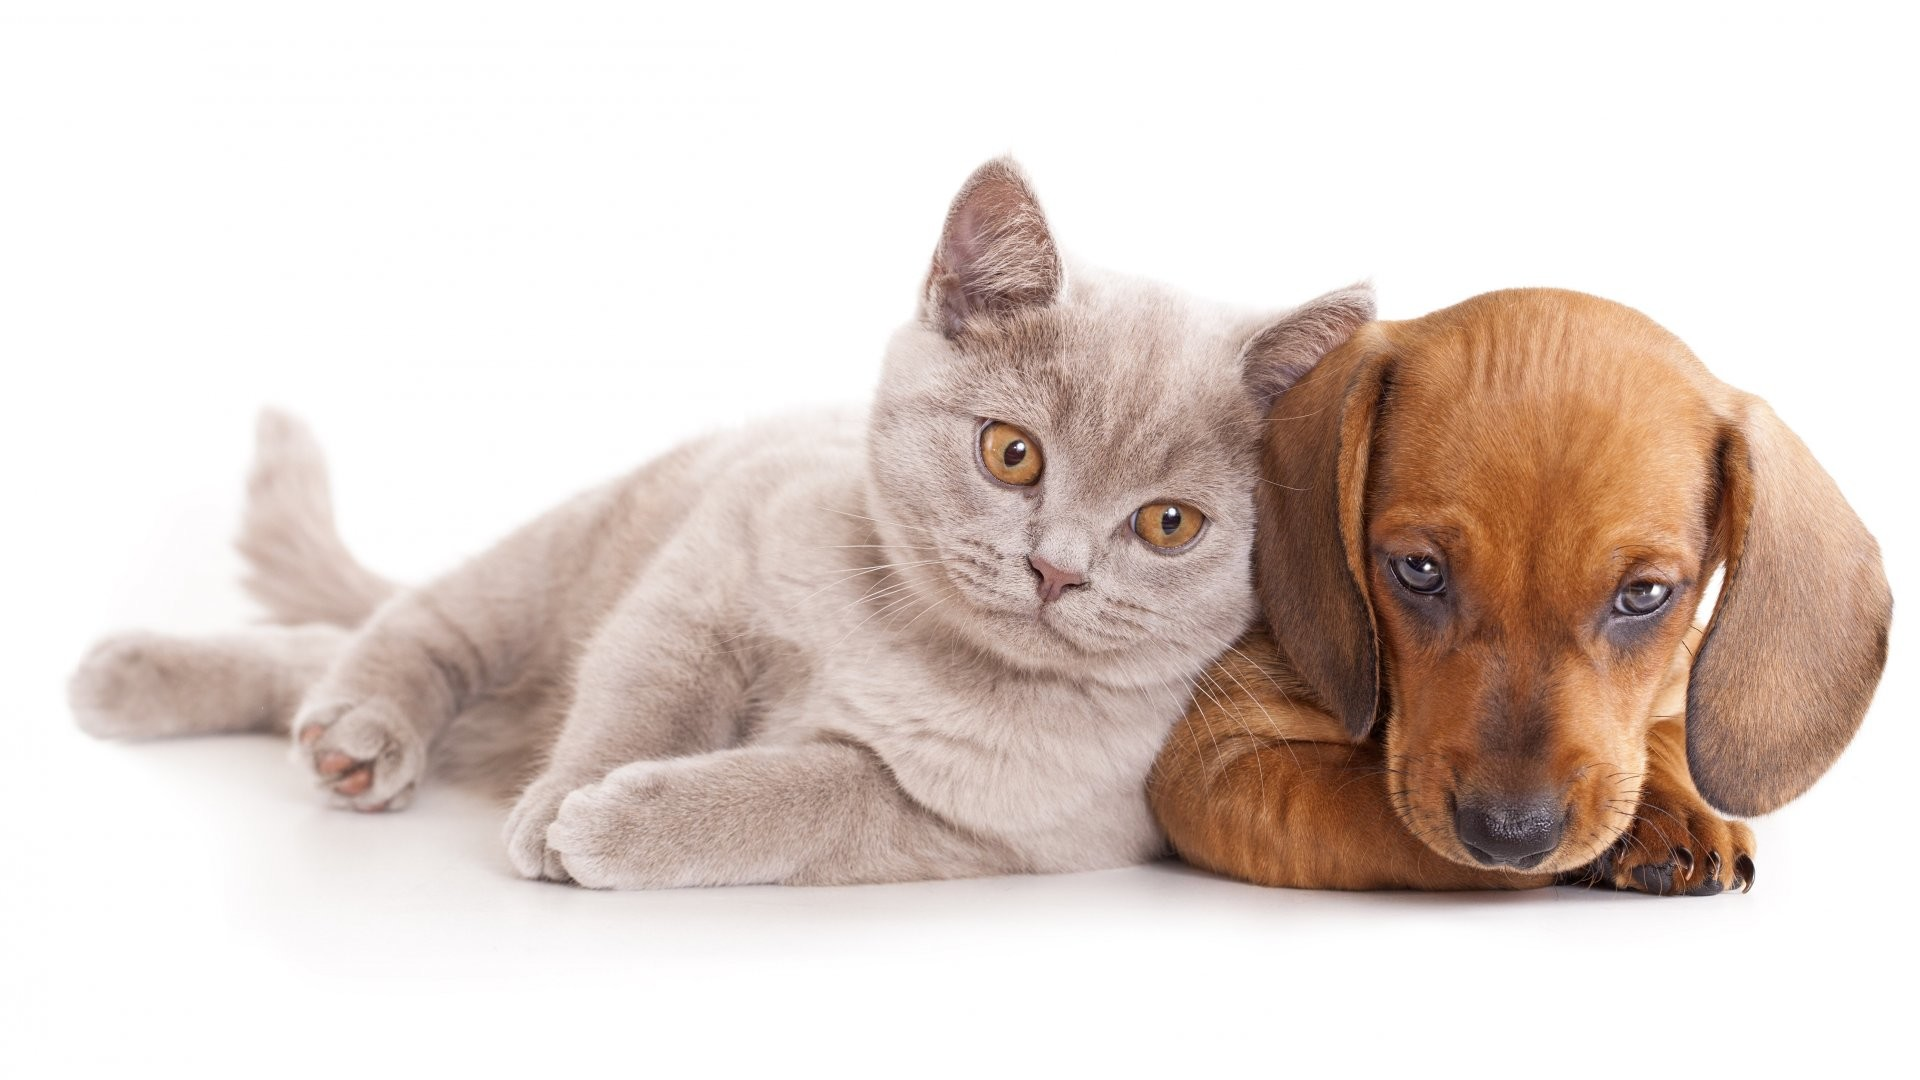 1920x1080 Best Cute cat dog free stock photos download